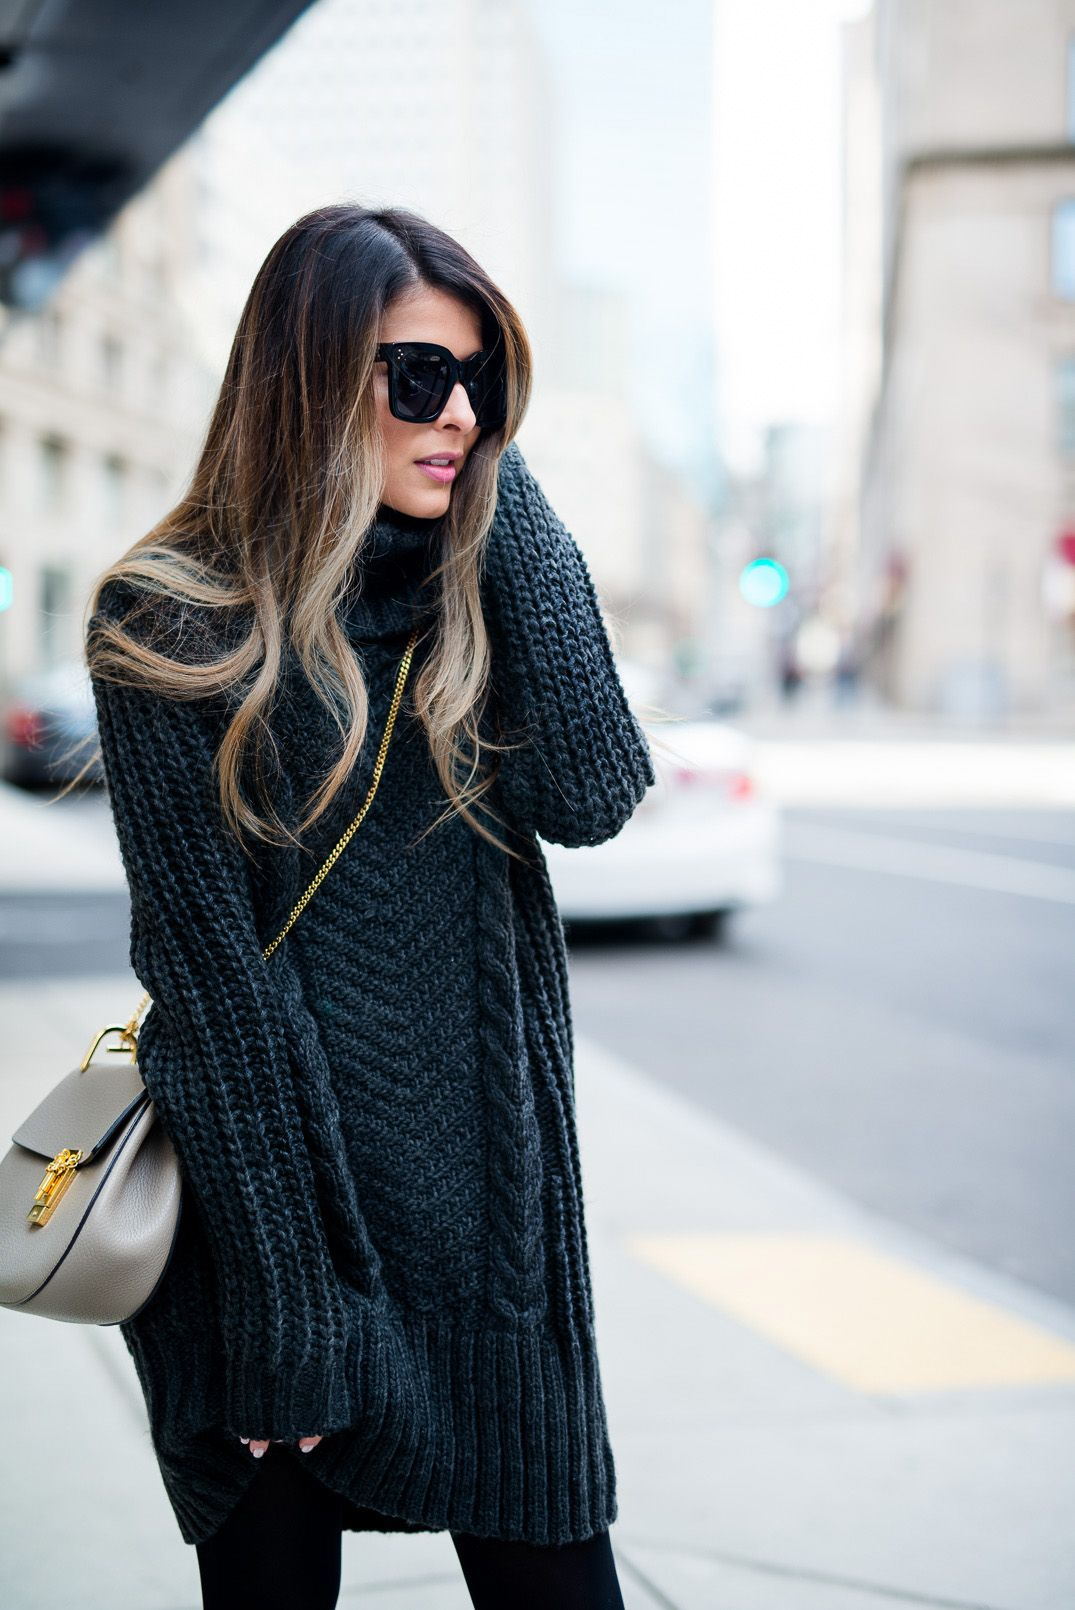 Sweater Dress | Ombre, Chloe drew bag and Black tights